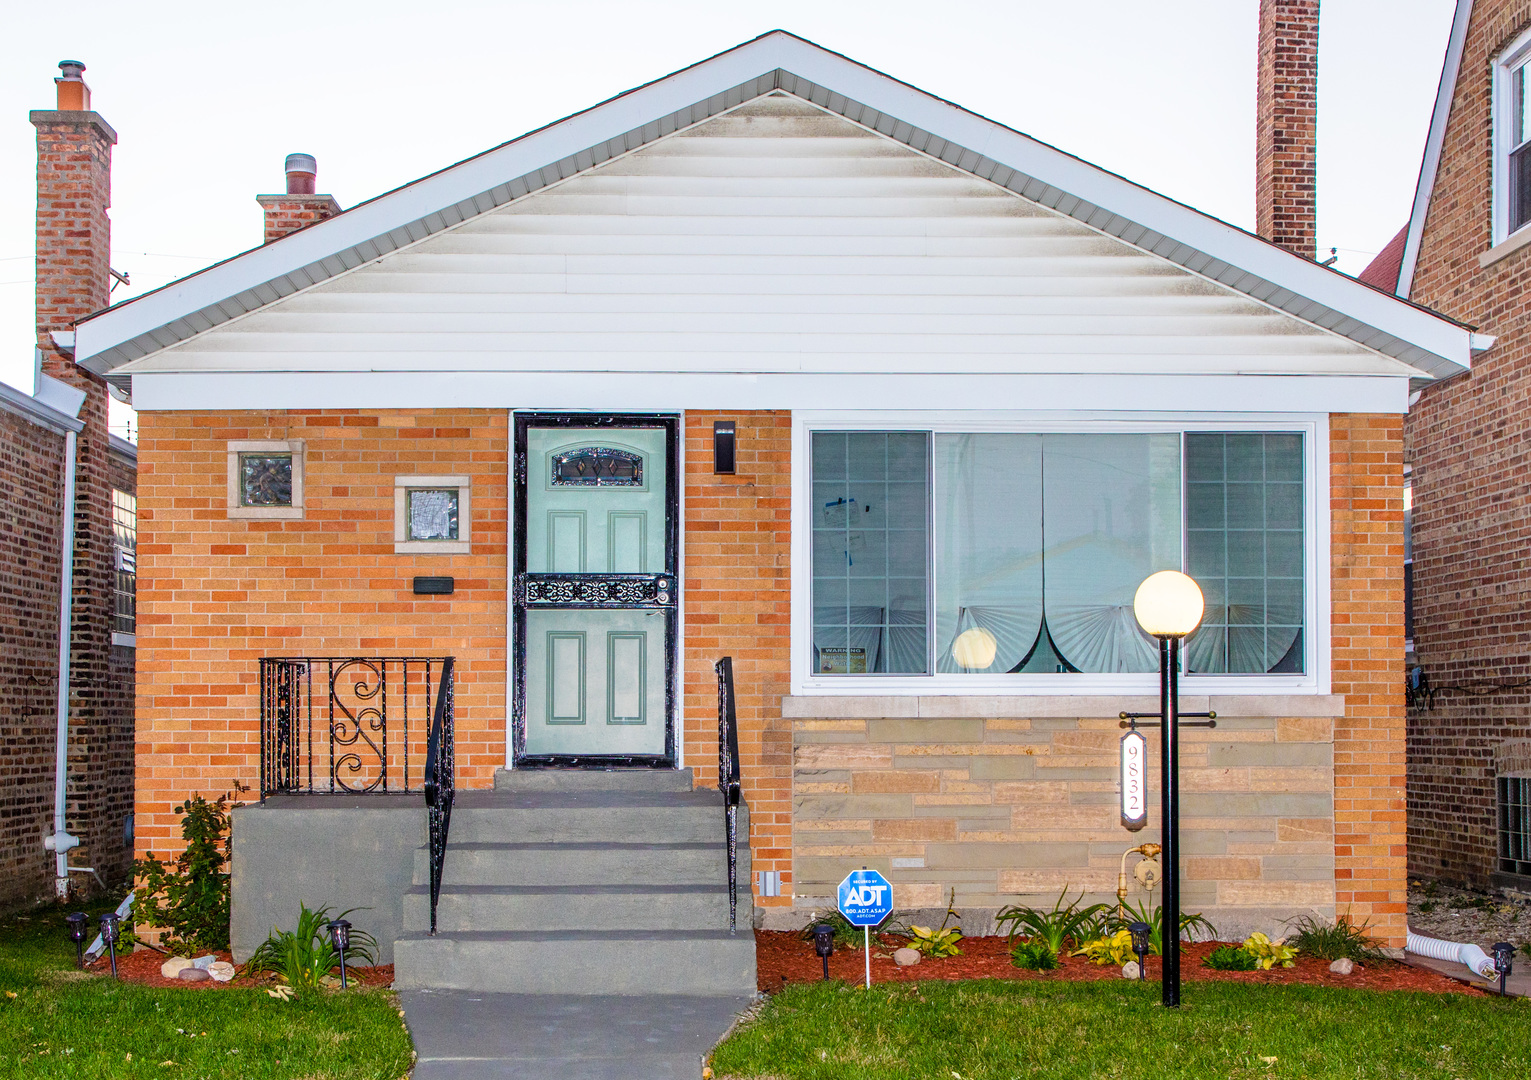 9832 Forest ,Chicago, Illinois 60628